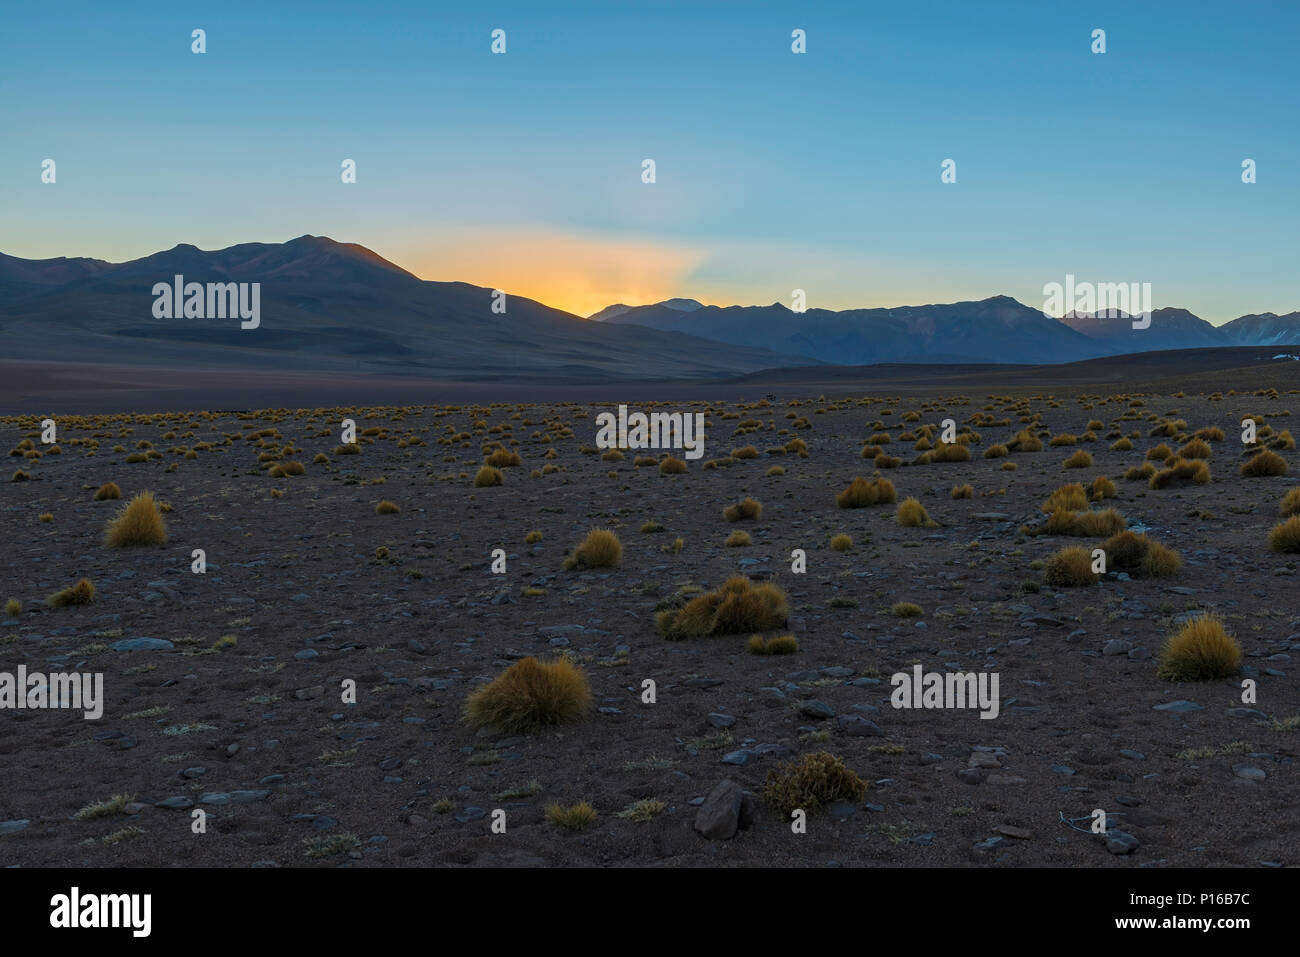 Landscape of the Andes mountain range at sunrise in the Siloli desert at 4600m high located between Chile and the Uyuni salt flat, Bolivia. - Stock Image